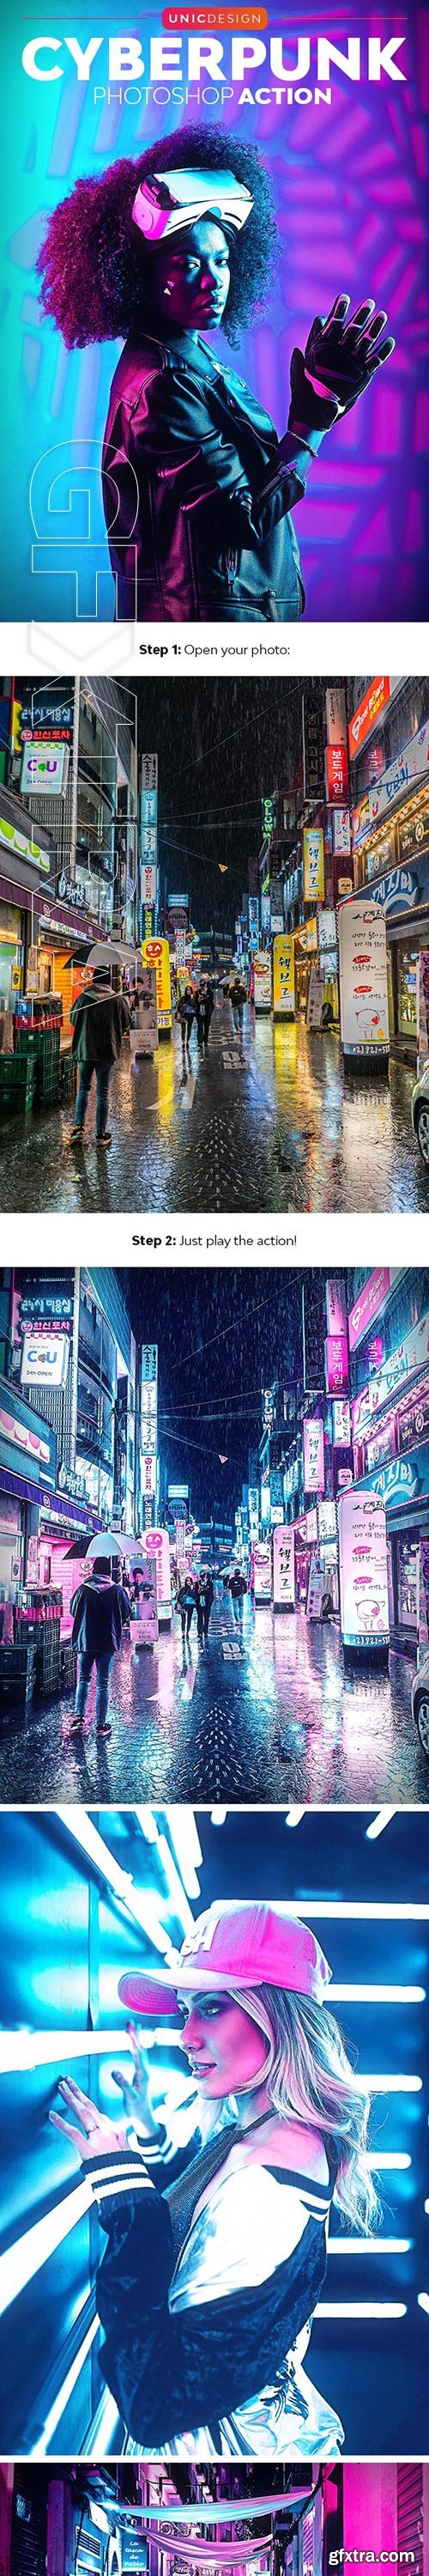 GraphicRiver - CyberPunk Photoshop Action 24648553